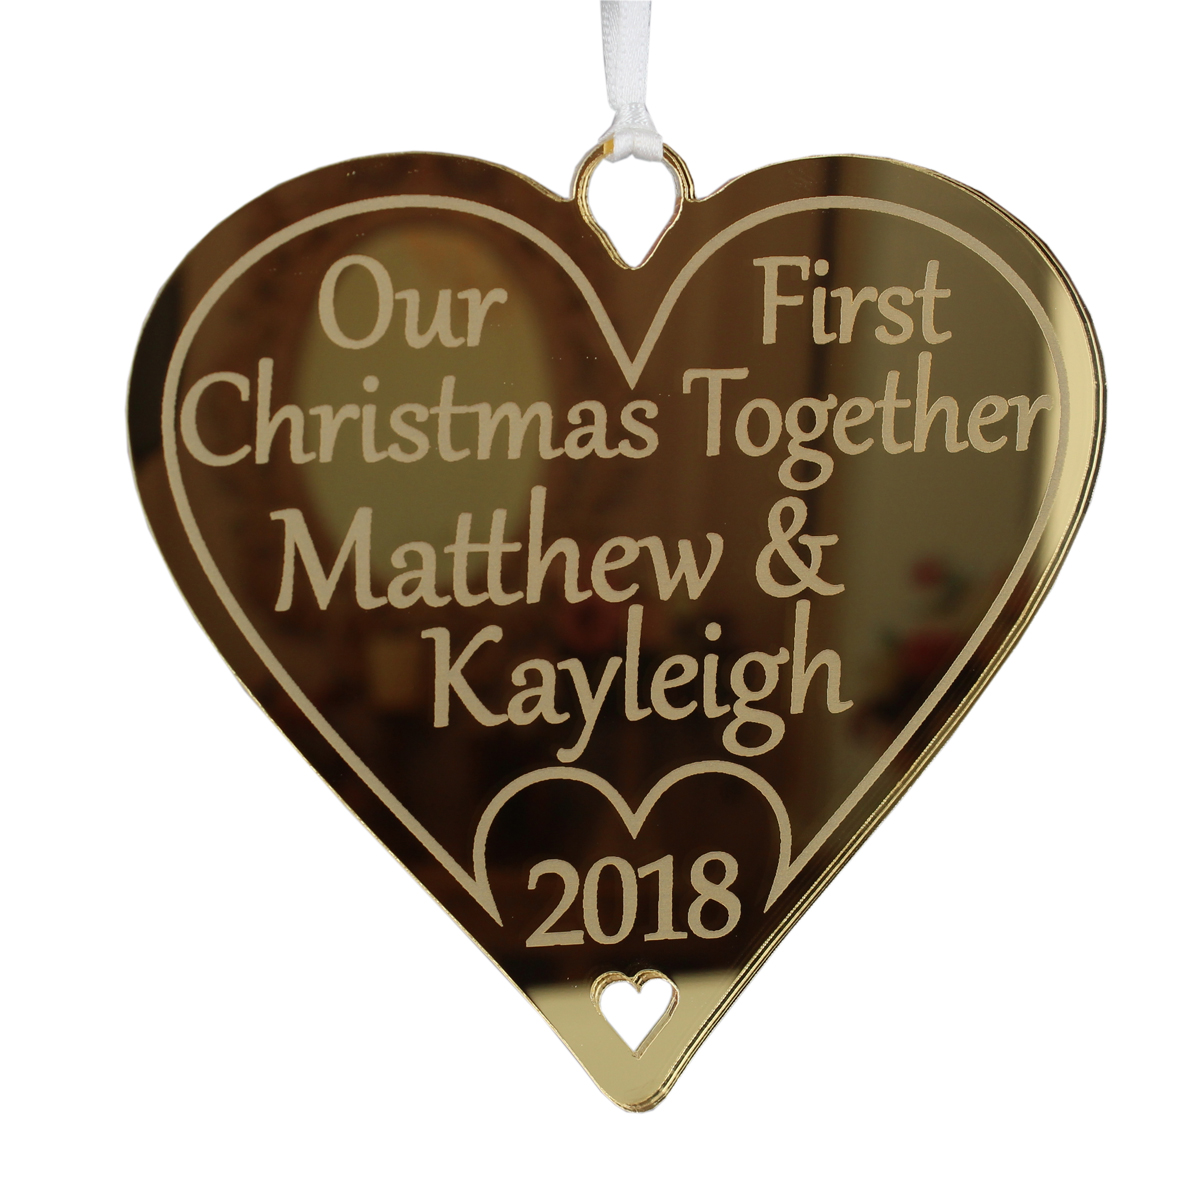 what to get for first christmas together